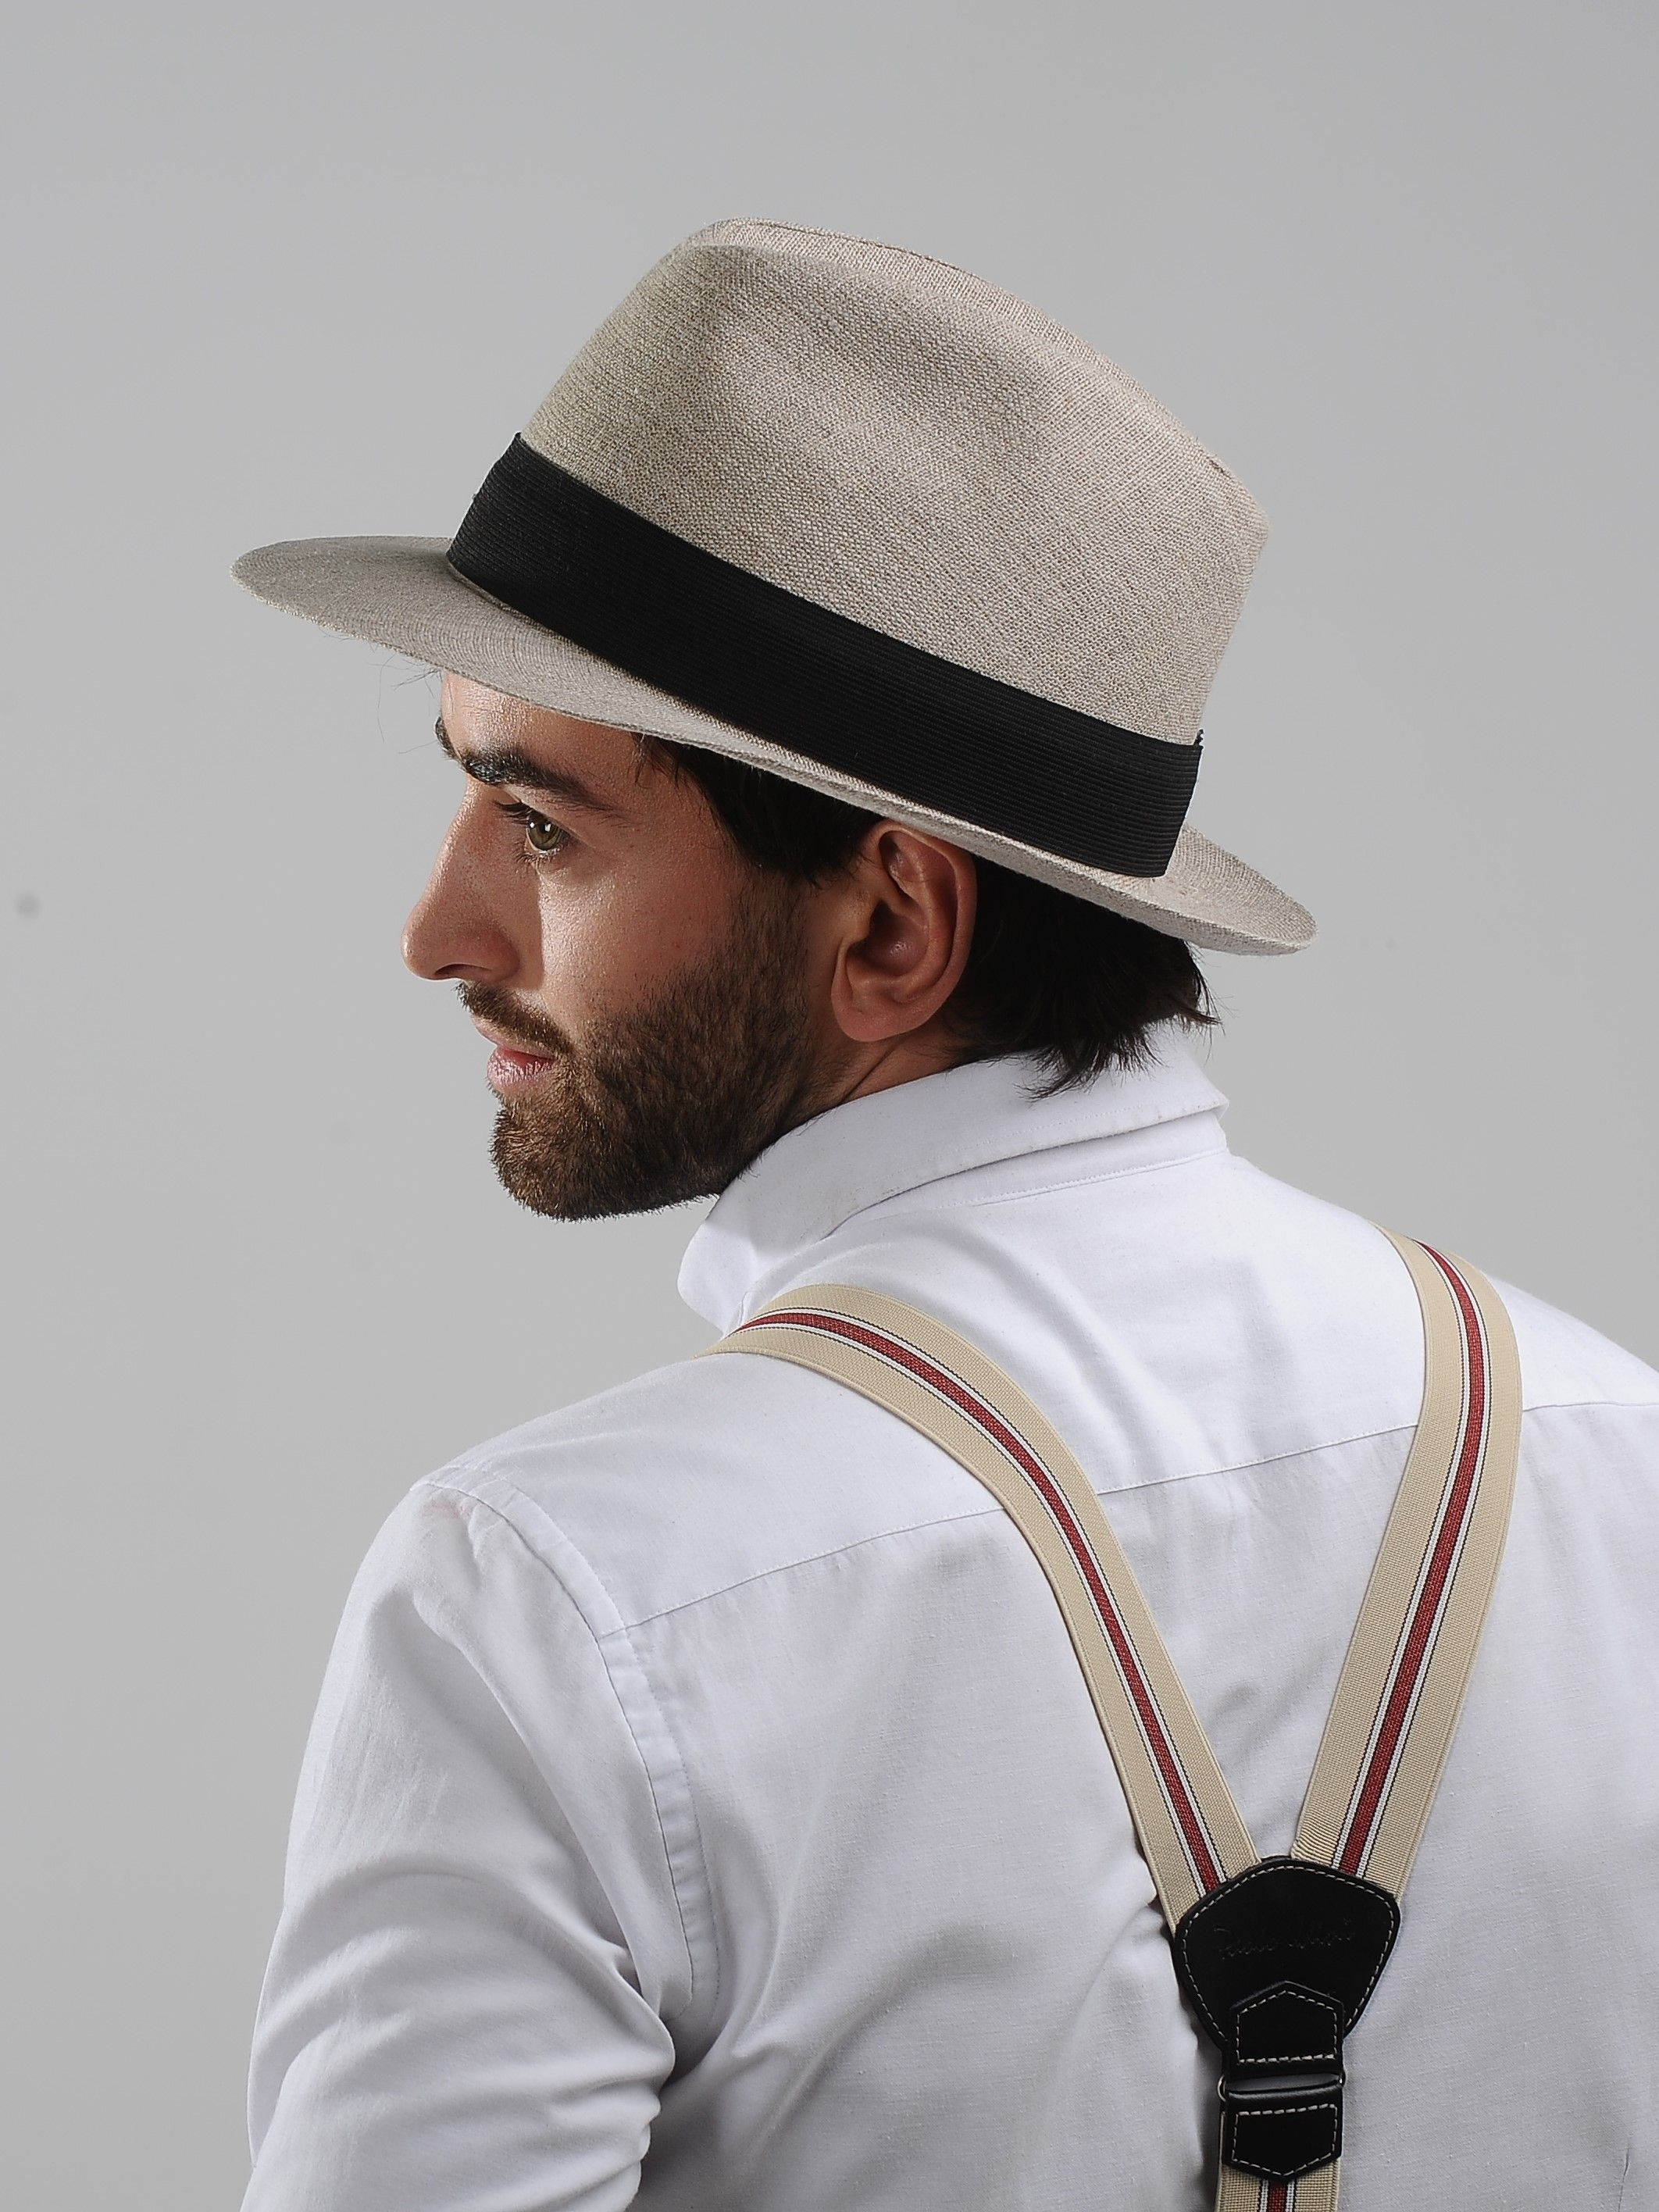 6f5aa751b7519 Lightweight and breathable summer Fedora wide brim hat. Hat is made with  pure natural linen